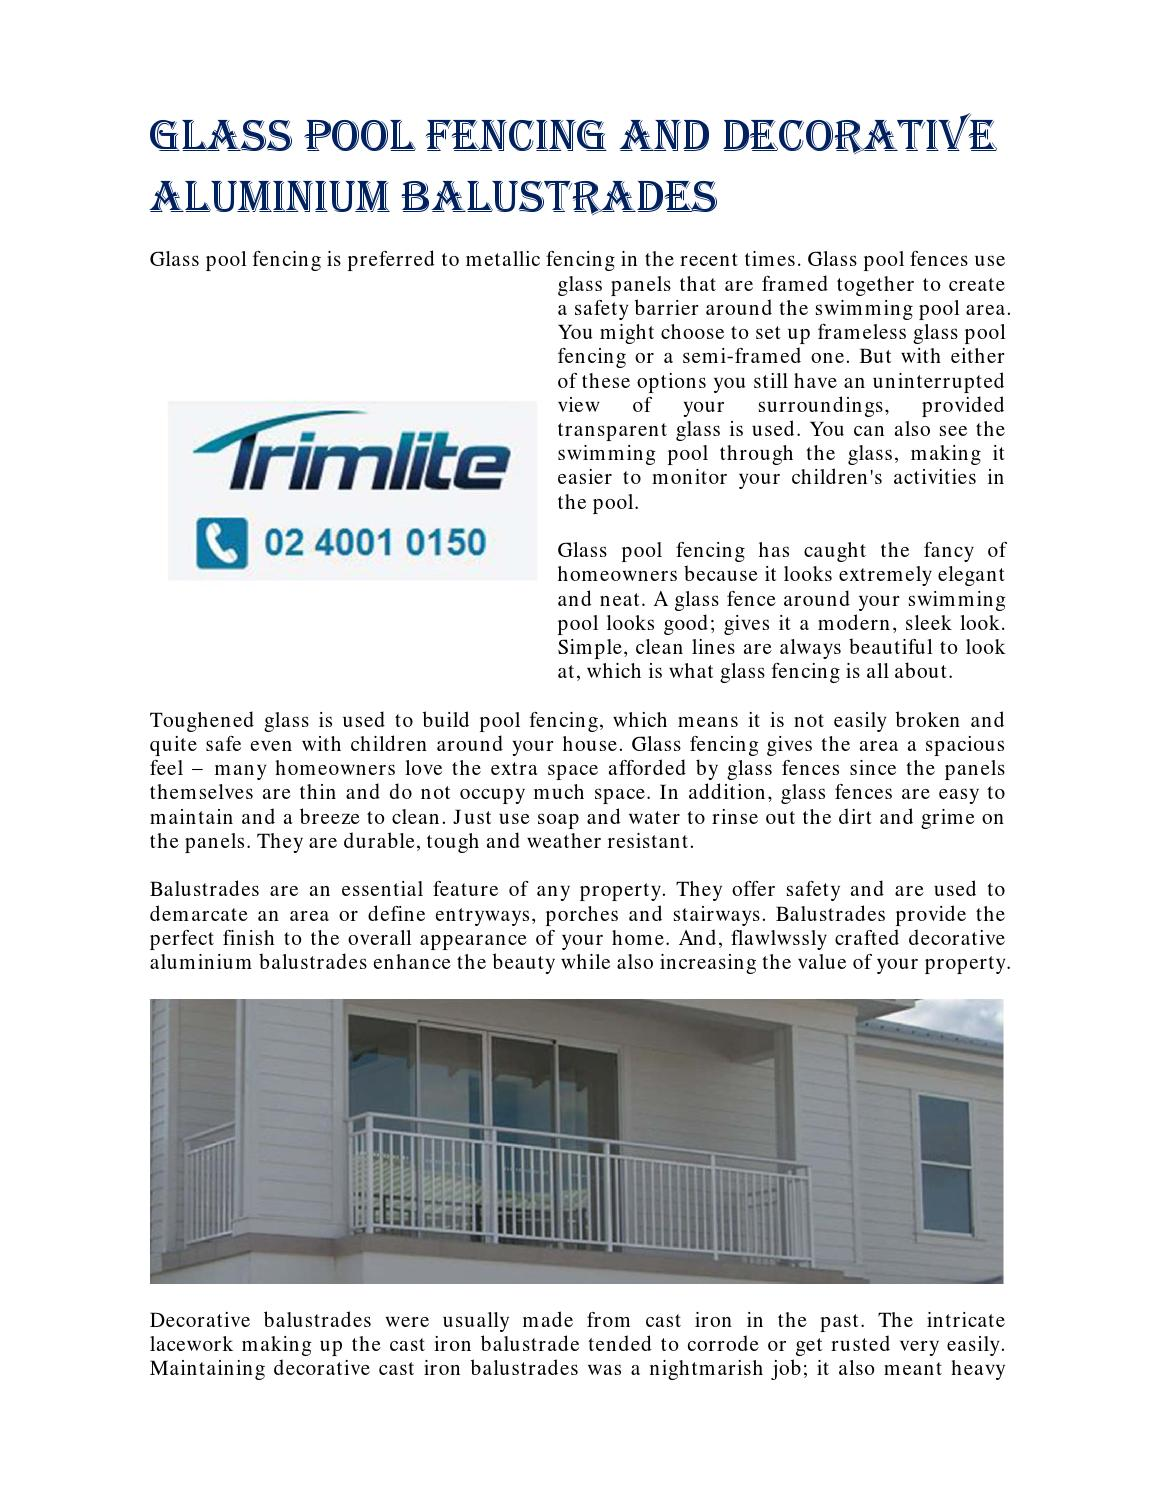 Glass Pool Fencing And Decorative Aluminium Balustrades By Trimlite